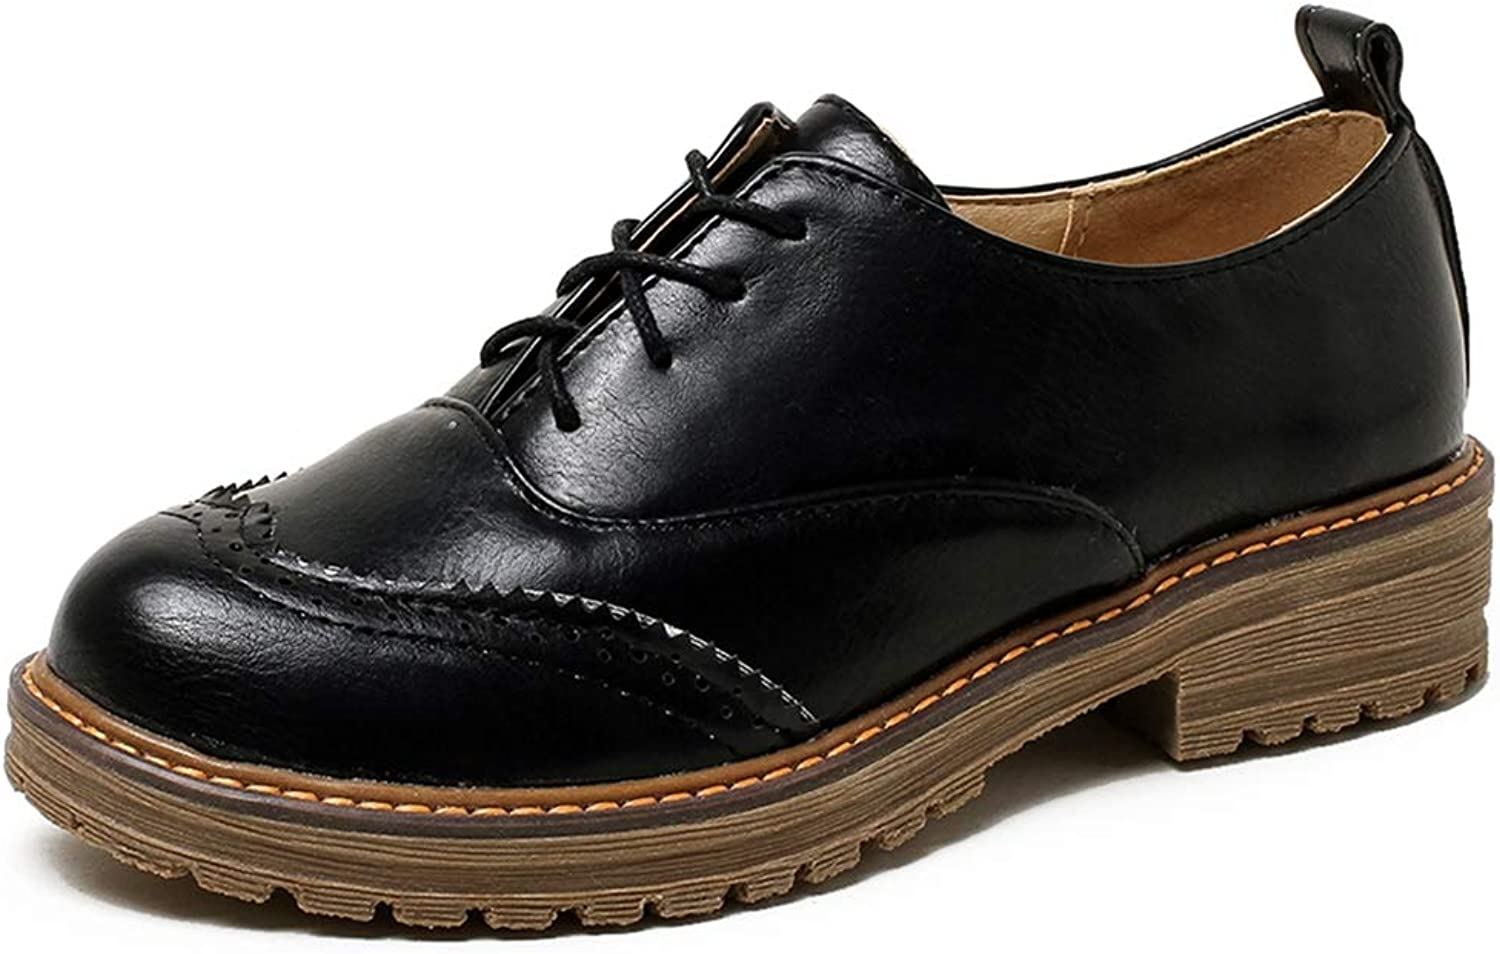 GIY Women's Classic Saddle Oxford shoes Wingtip Lace Up British Casual Flat Low Heel Oxfords Brogues Black